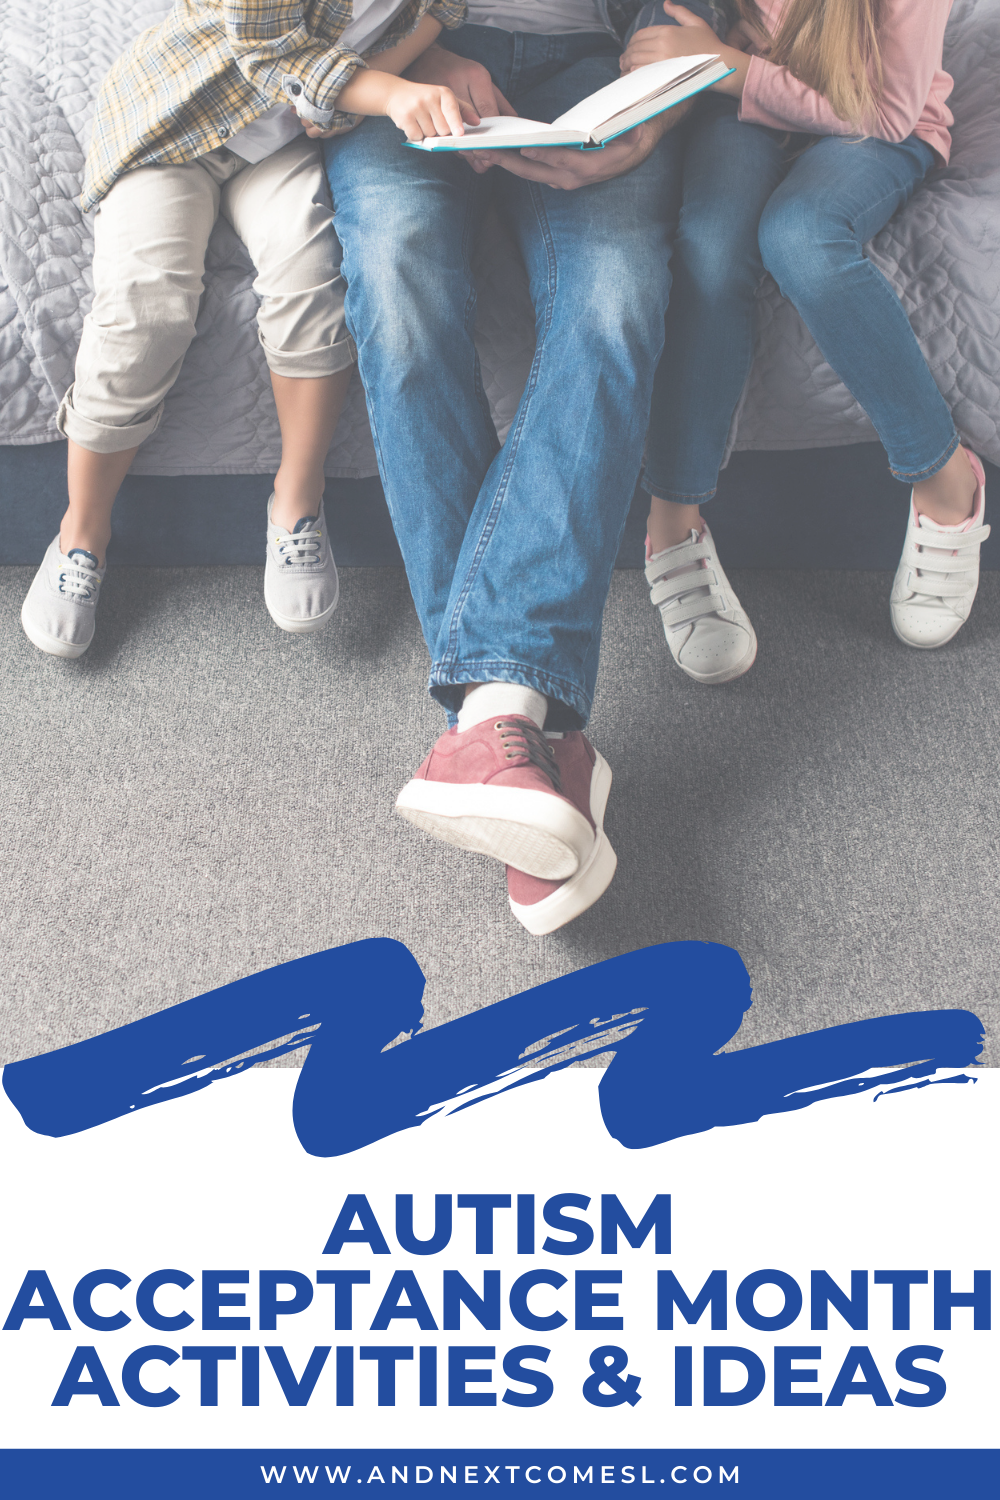 Instead of Autism Awareness Month, celebrate Autism Acceptance Month this April  with these awesome autism acceptance month activities and ideas